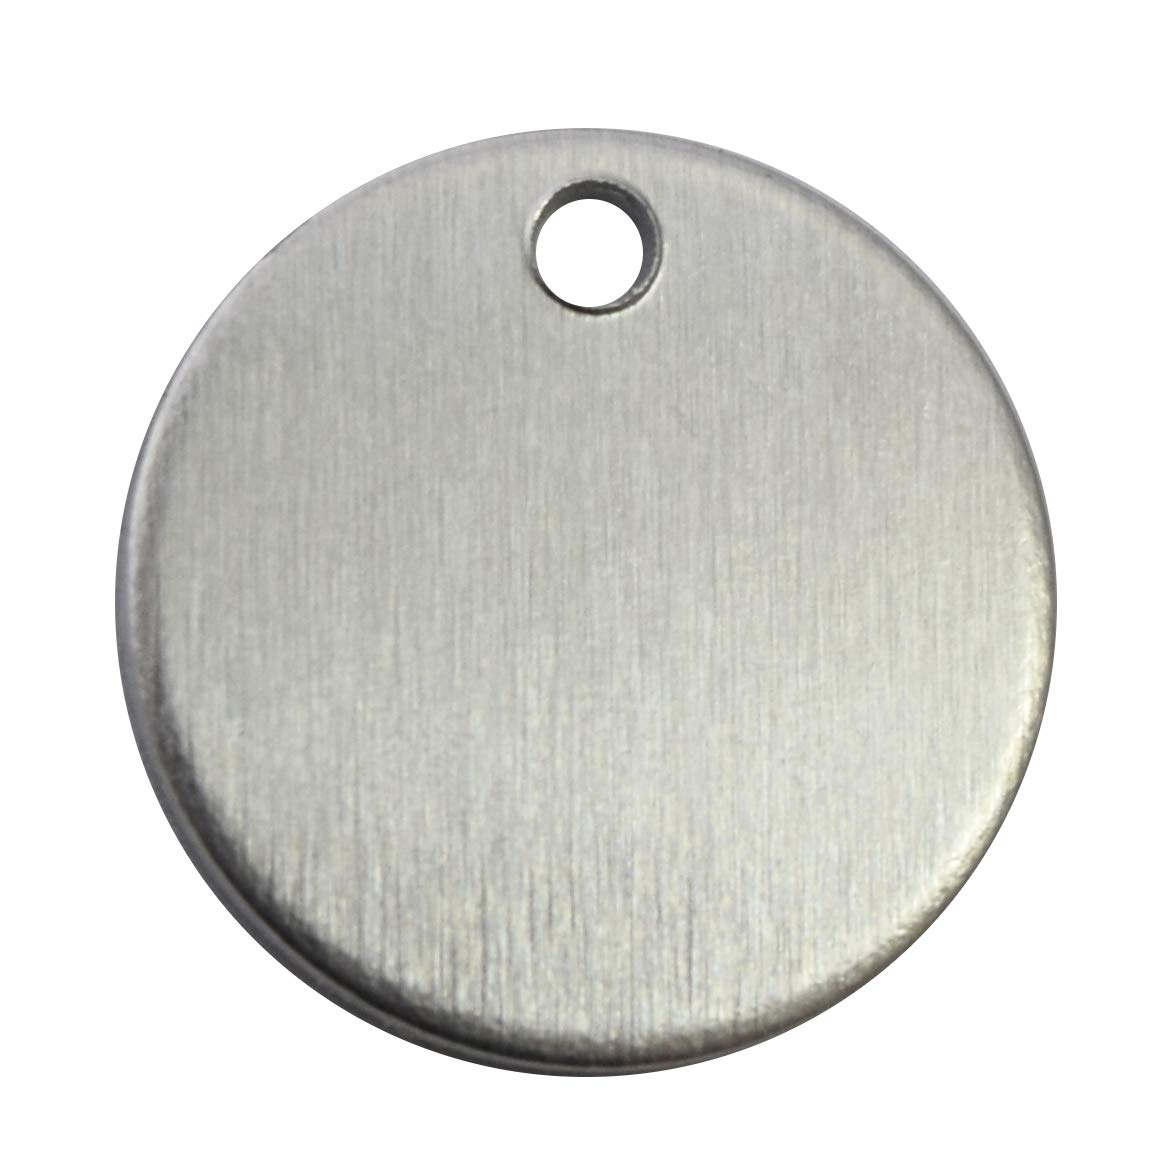 RMP Stamping Blanks, 3/4 Inch Round W/Hole, Aluminum .063 Inch (14 Ga.) - 50 Pack Rose Metal Products 4336835262